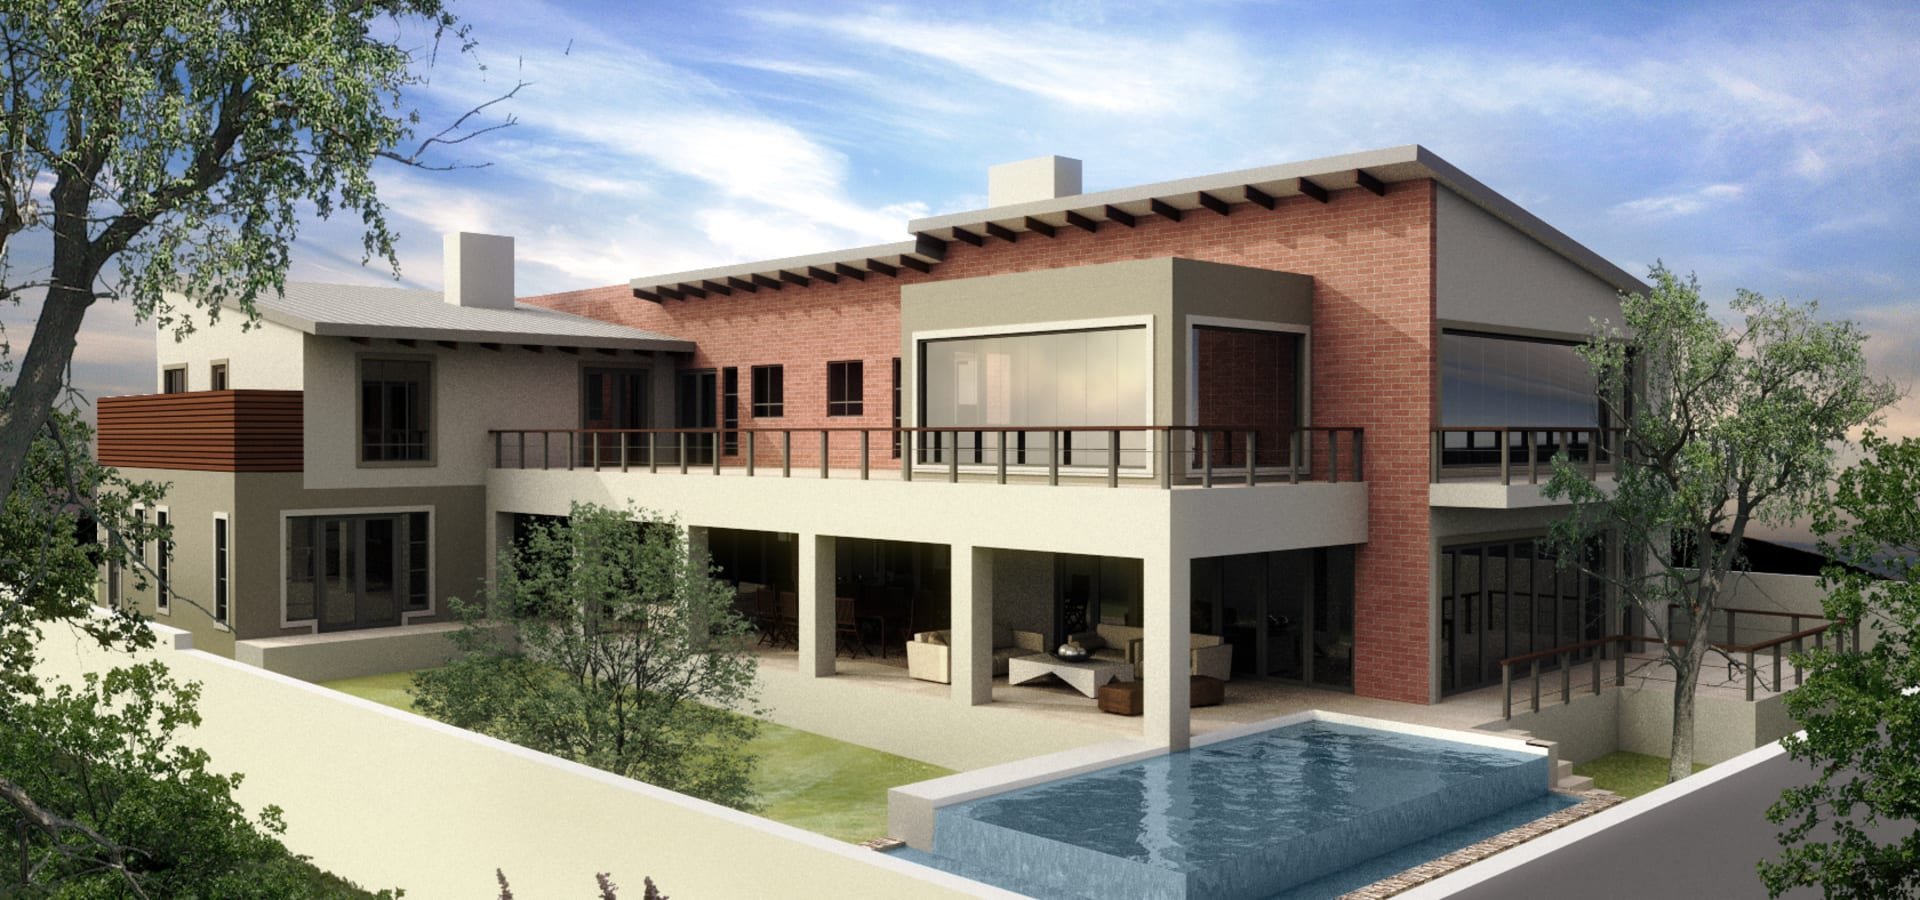 Architectural Designs Blue Designs Architectural Designers Architects In Johannesburg